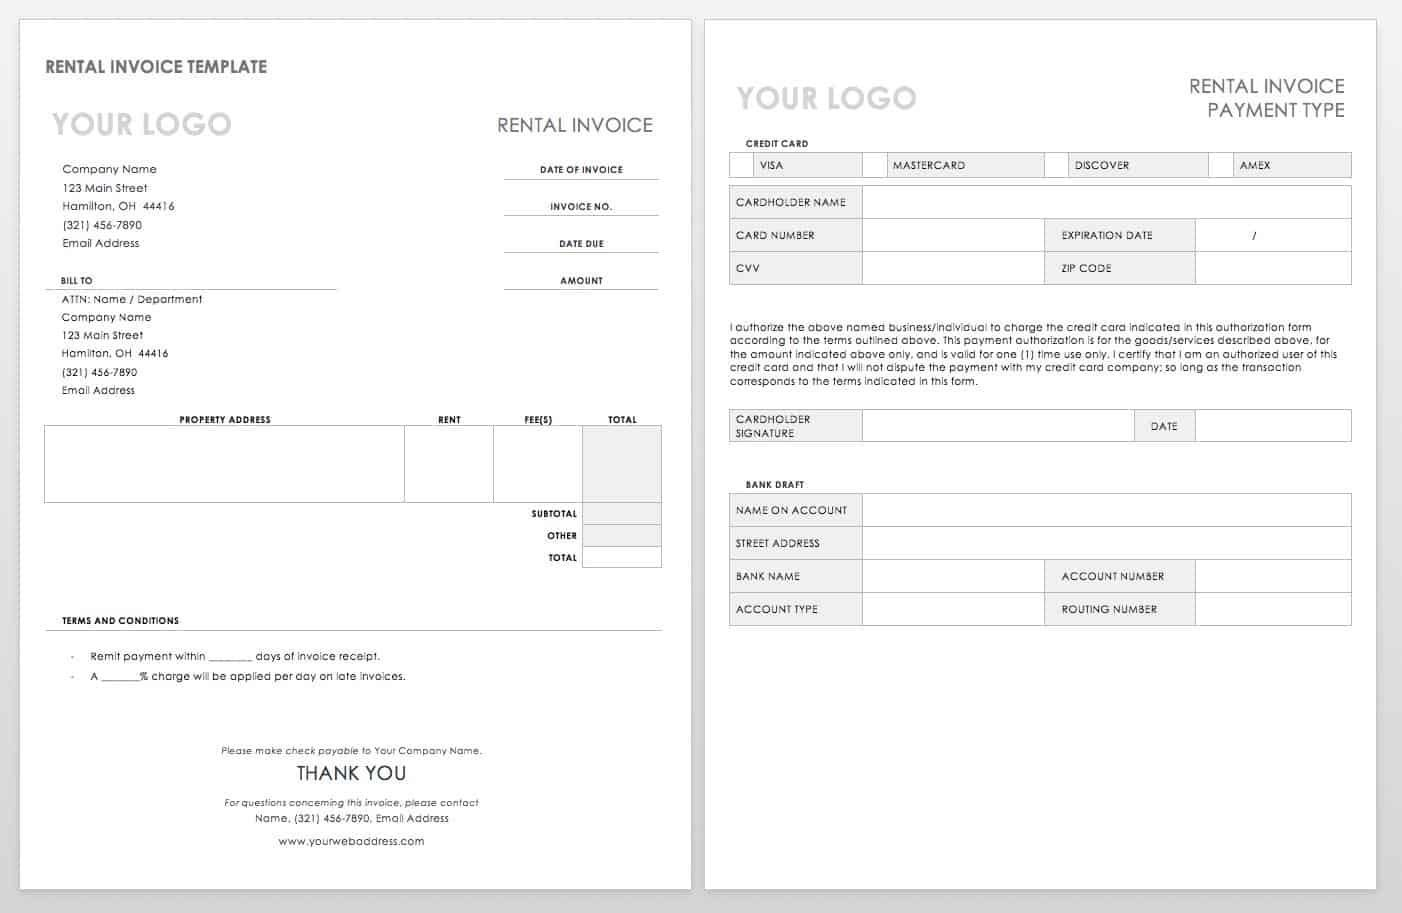 005 Fantastic Free Downloadable Invoice Template Design  Templates Excel Printable Word SampleFull